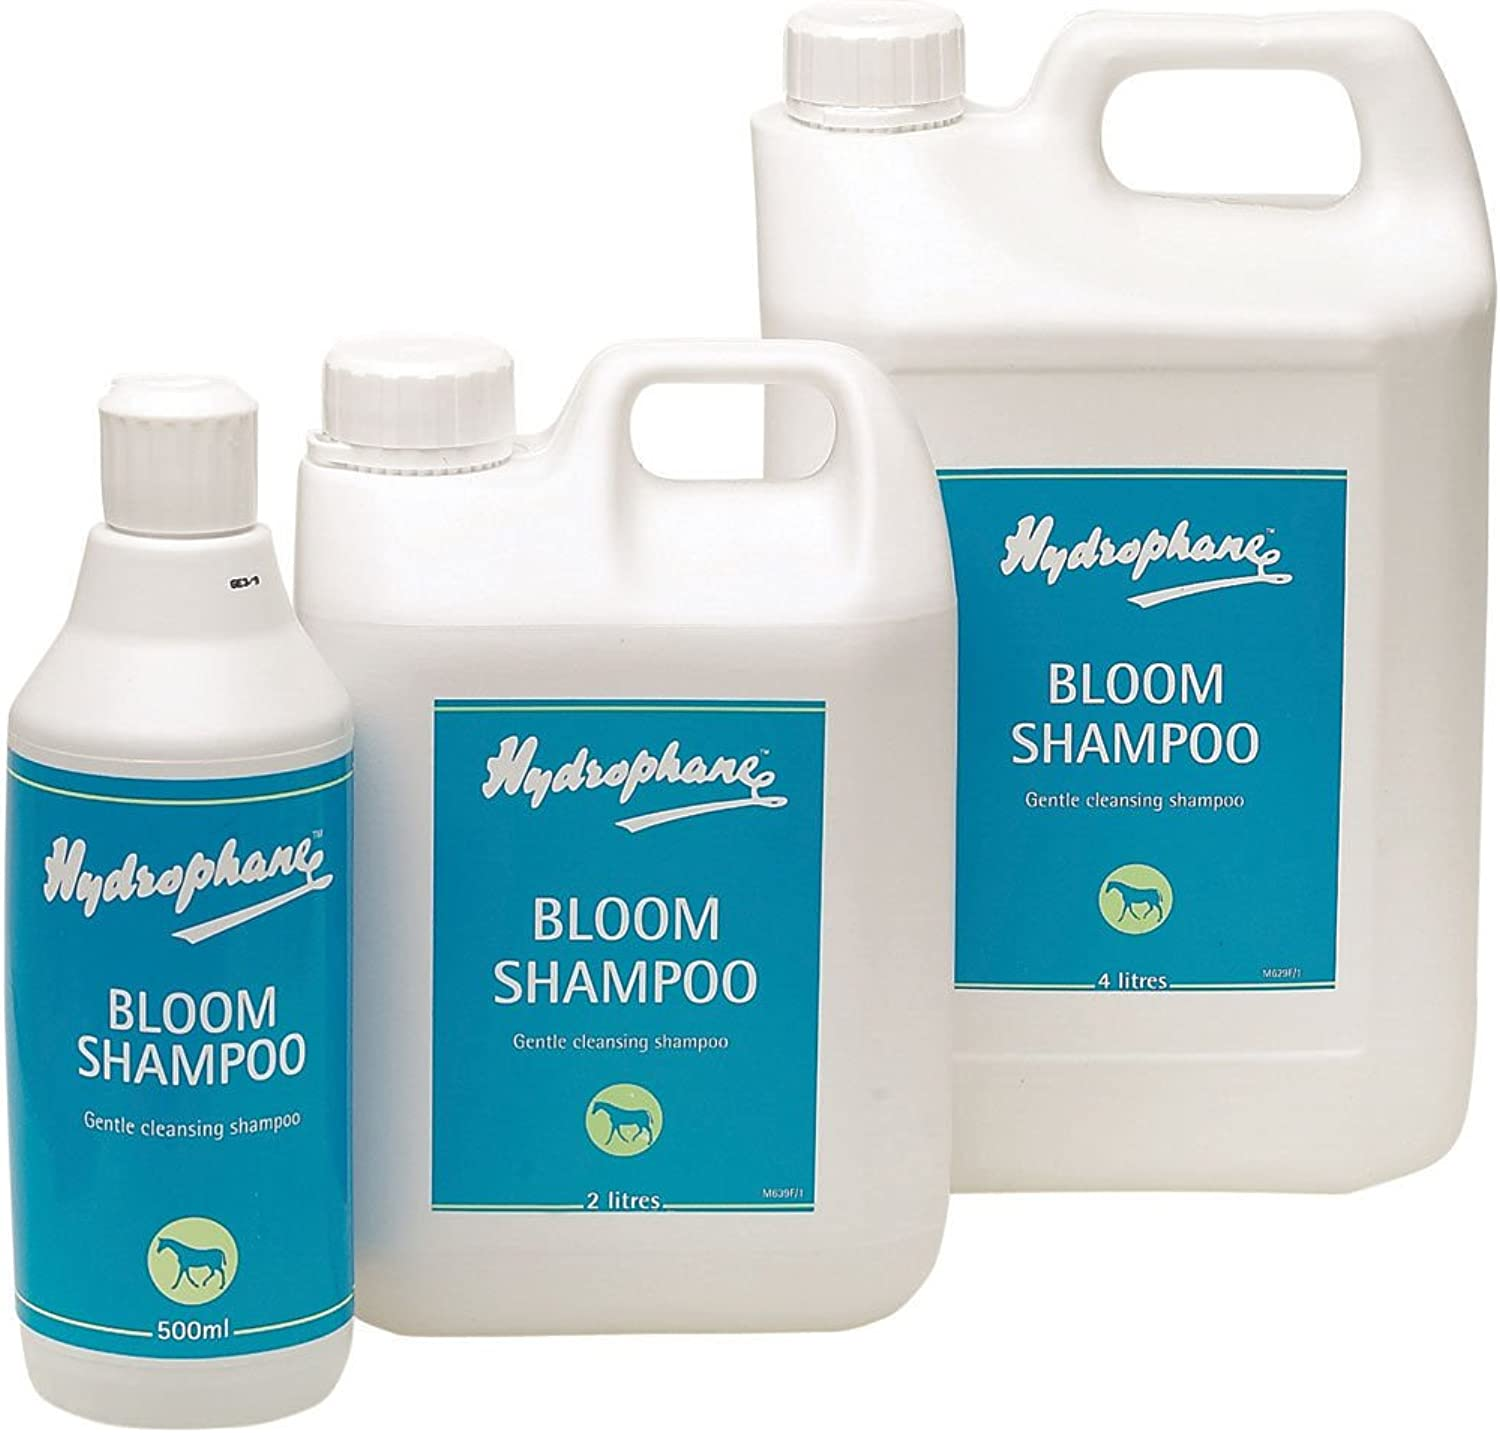 Bloom Shampoo, Hydrophane, Horse Shampoo and Conditioners, 4.0L